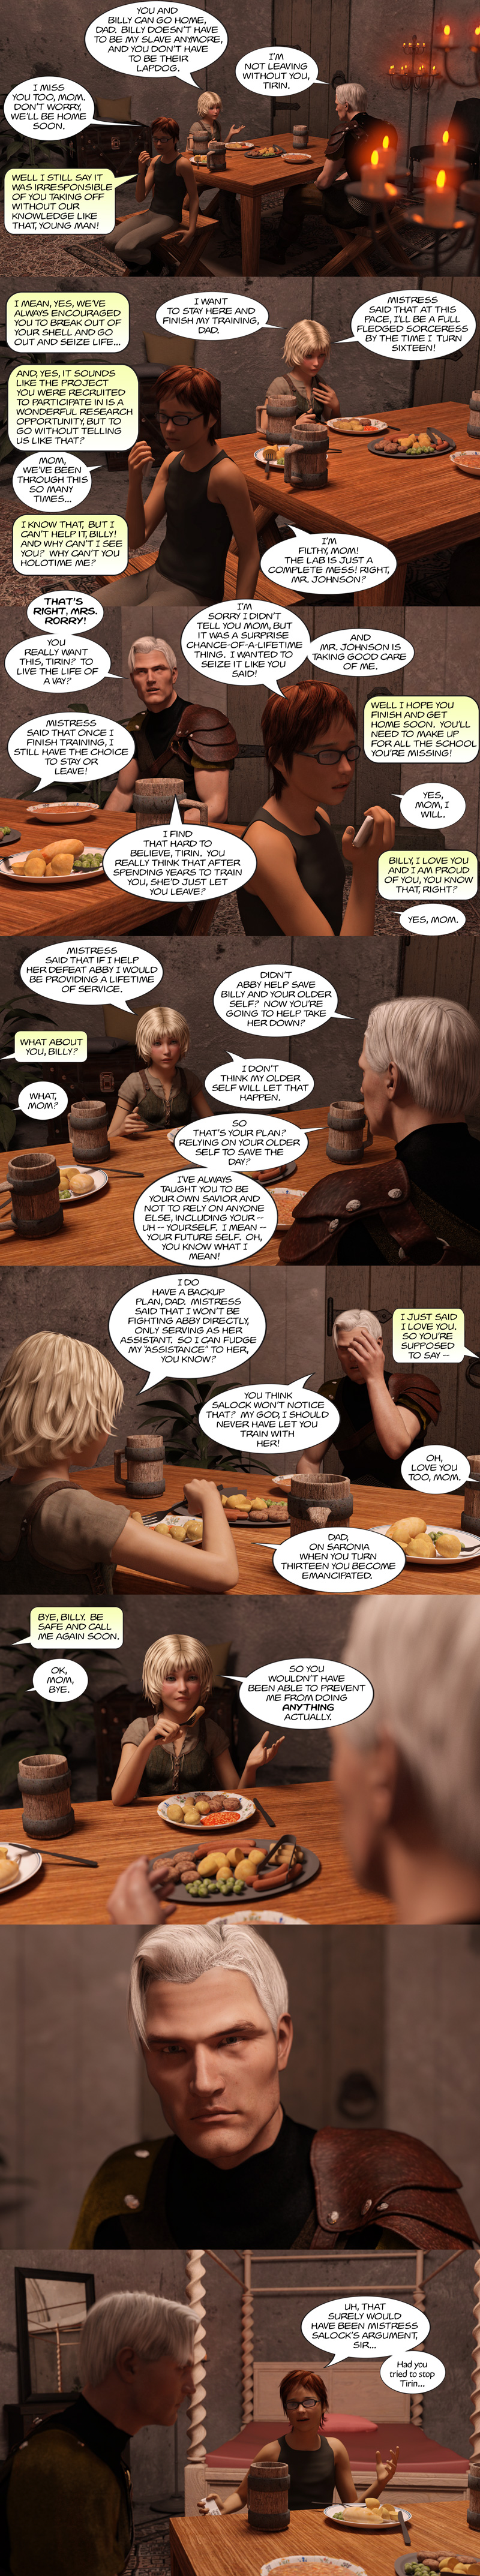 Chapter 16, page 7 – typical dinner at the Johnson household with guest, Billy.